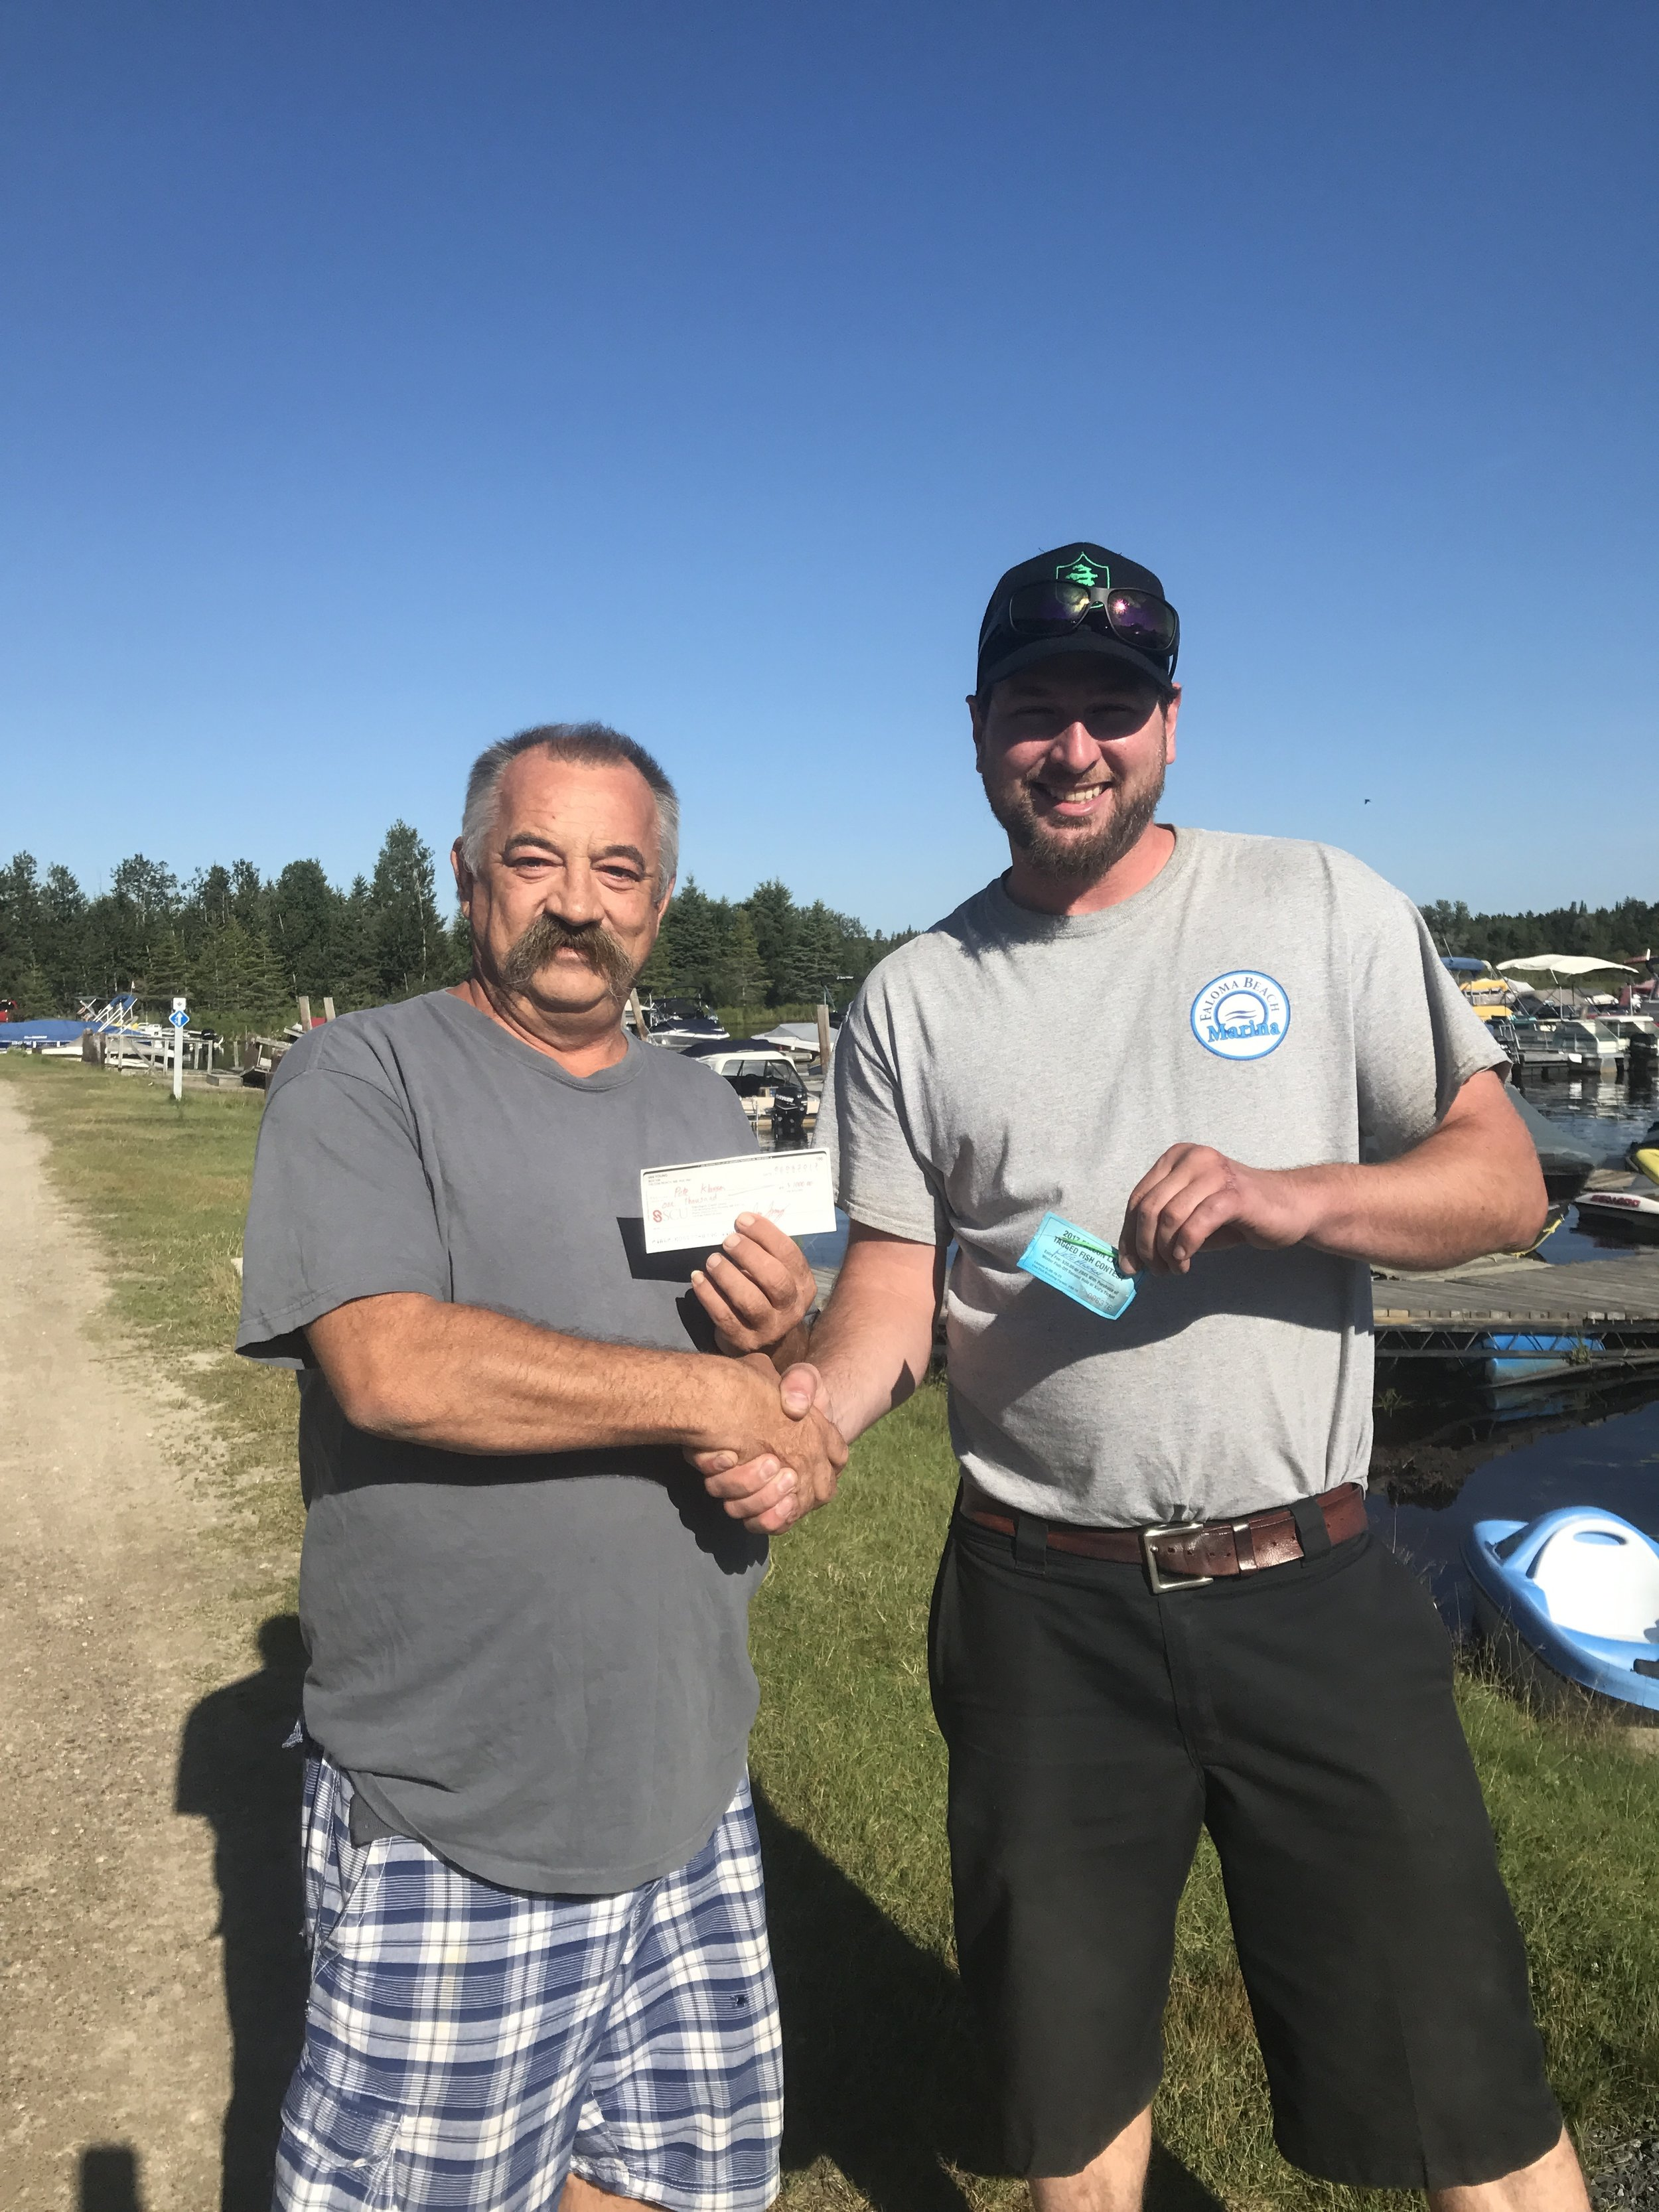 Congrats to Pete Who caught the first Tagged Fish on Falcon Lake! Pete won a $1000.00 for catching the pike with tag #2 in it. Pete caught this fish from shore near the Falcon Lake Winter Fish-Off derby site. there's still 5 tagged fish worth a total of $9000.00 swimming in Falcon Lake as we Speak so get out there and try to catch one!